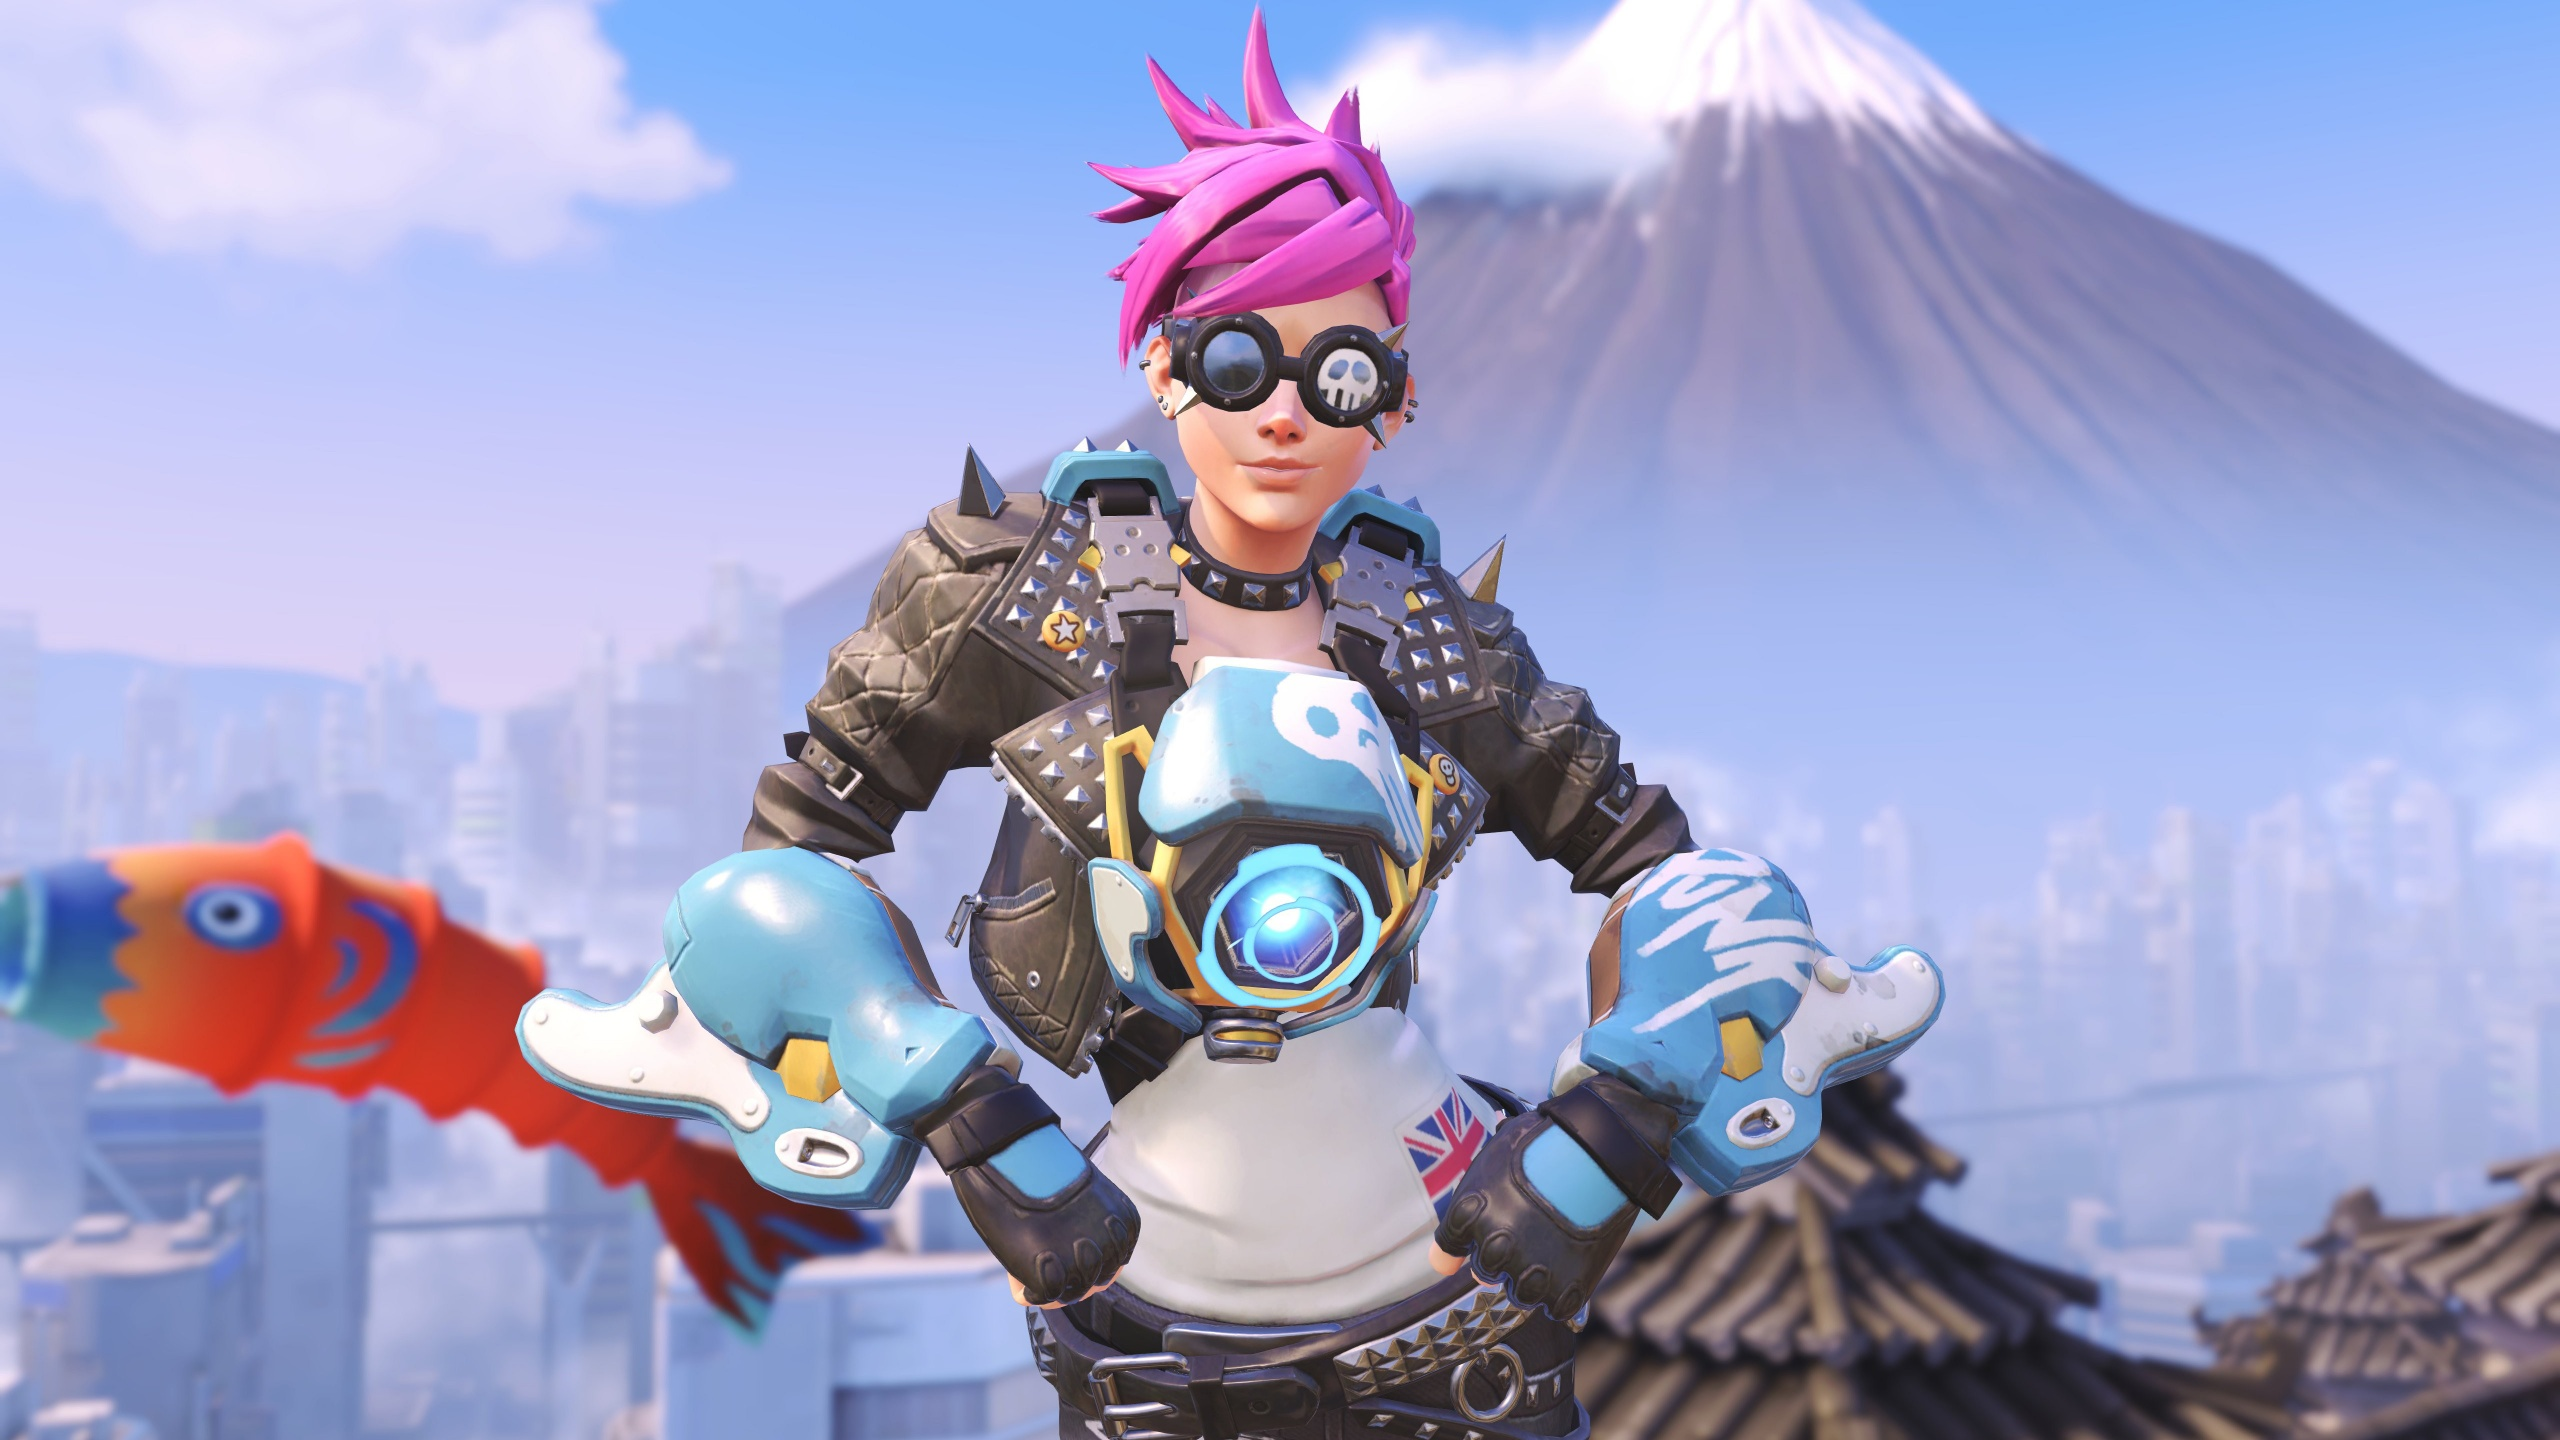 Tracer Overwatch 4K 5K Wallpapers HD Wallpapers 2560x1440